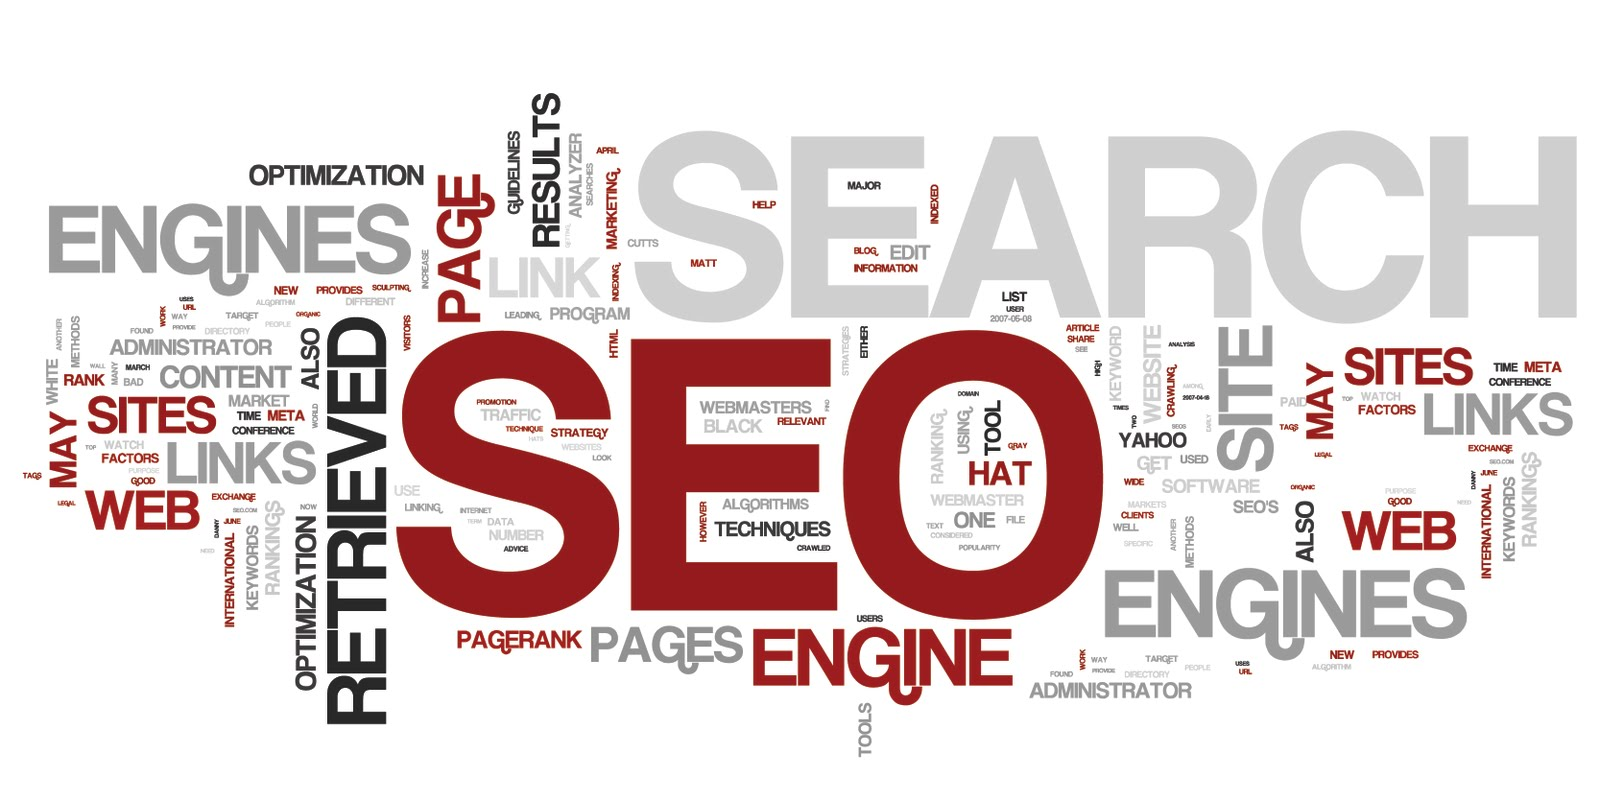 What Are The Types Of Service Tio Get Under Seo?